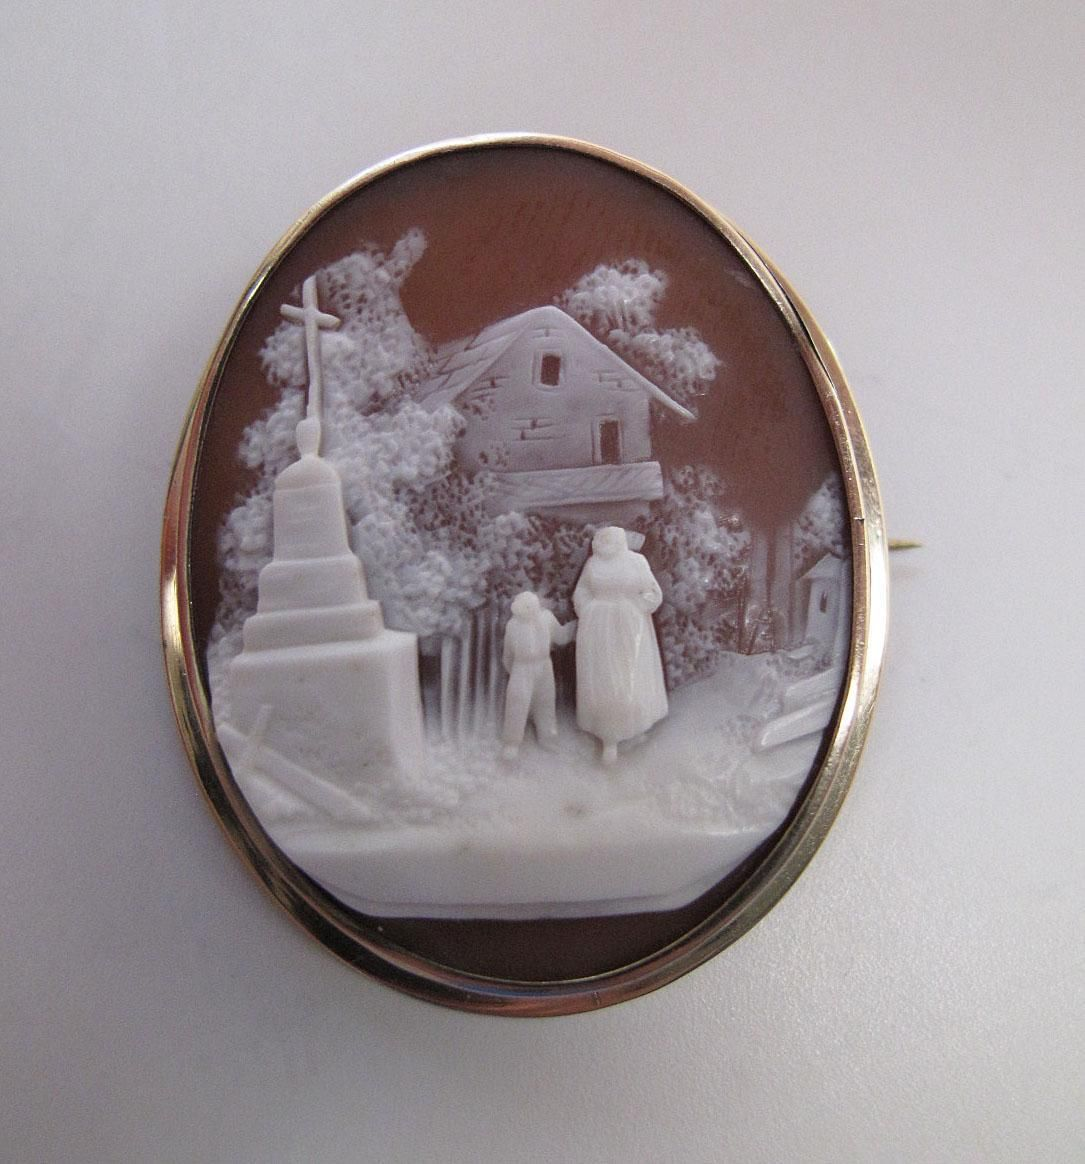 Antique Victorian 14K Gold Scenic Shell Cameo Brooch... a finely carved example with a nicely detailed pastoral vignette. The scene is beautifully